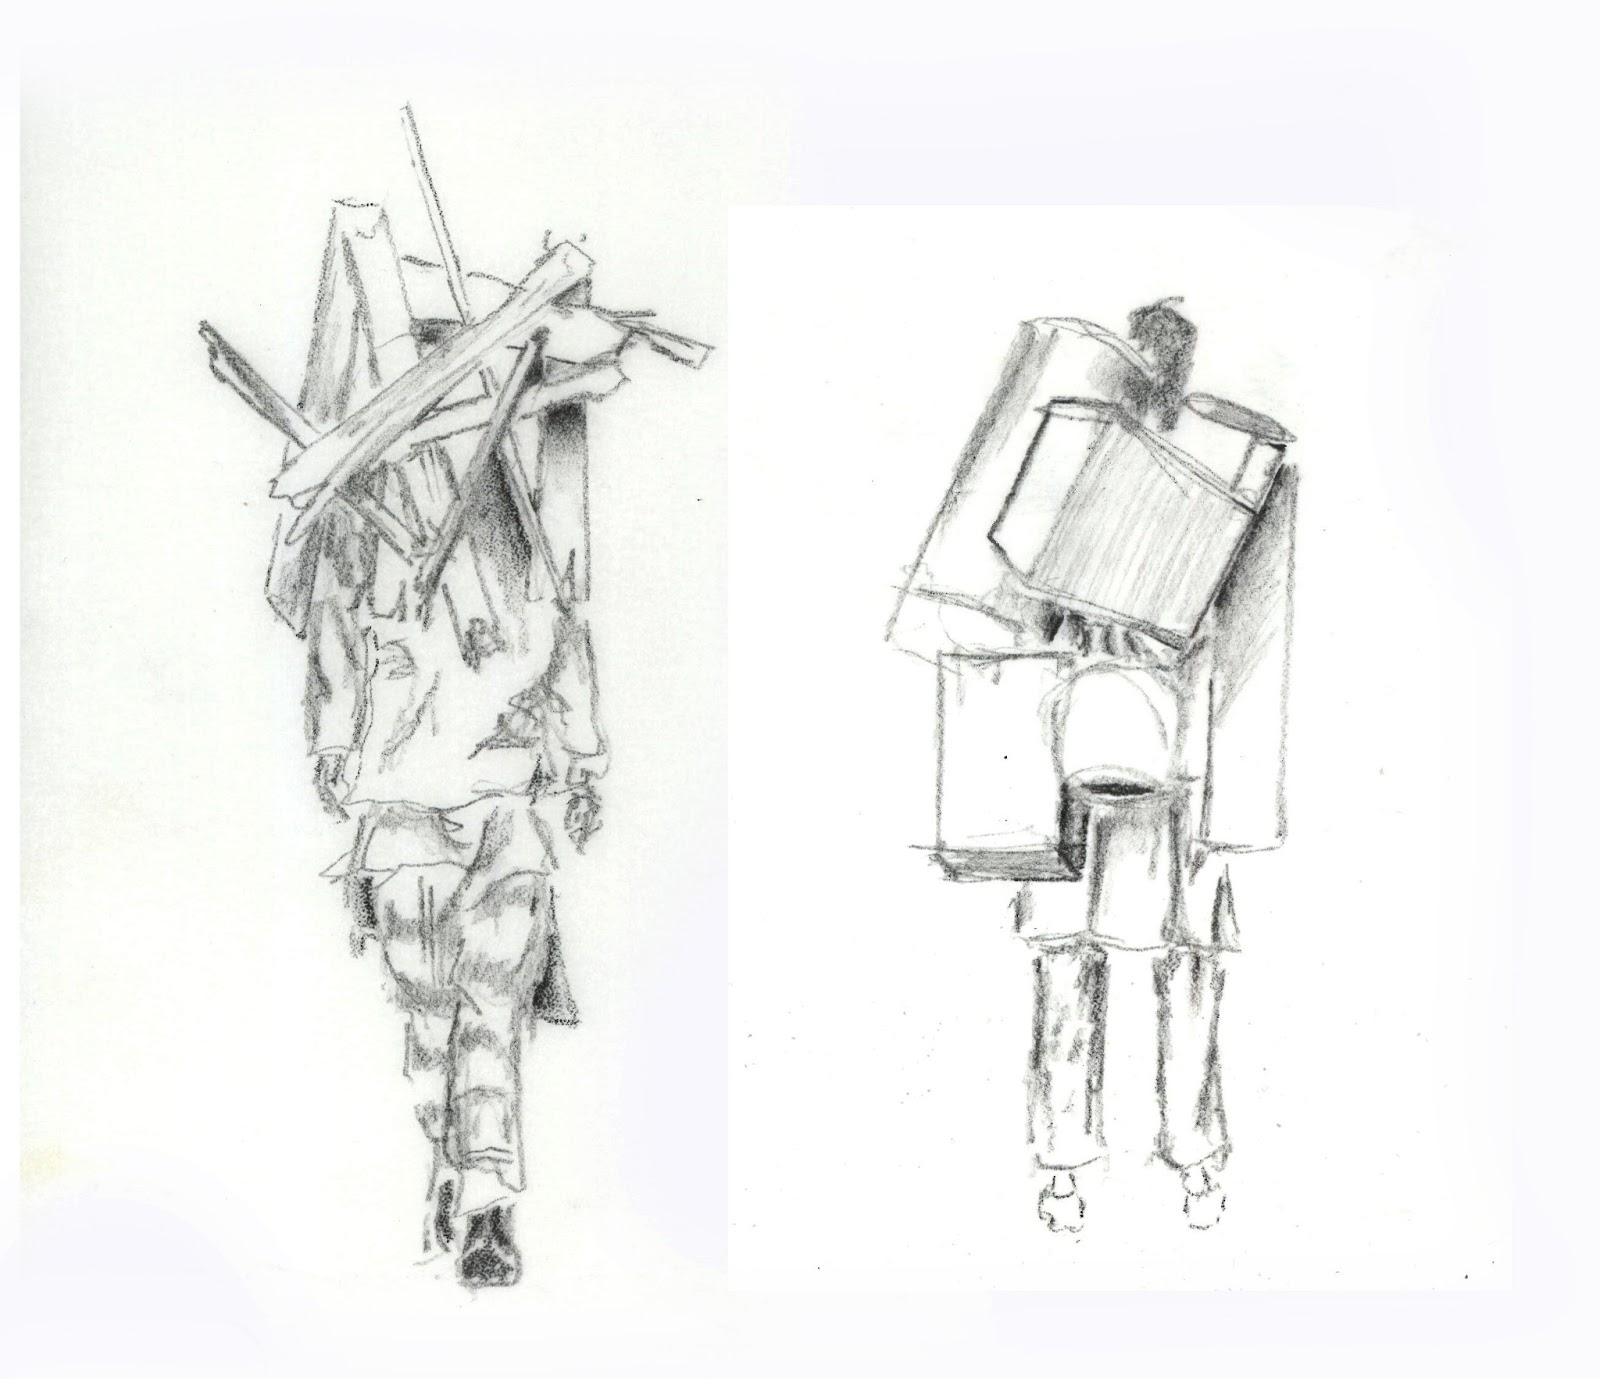 Design Thesis Journal: Some Considerations and Sketches